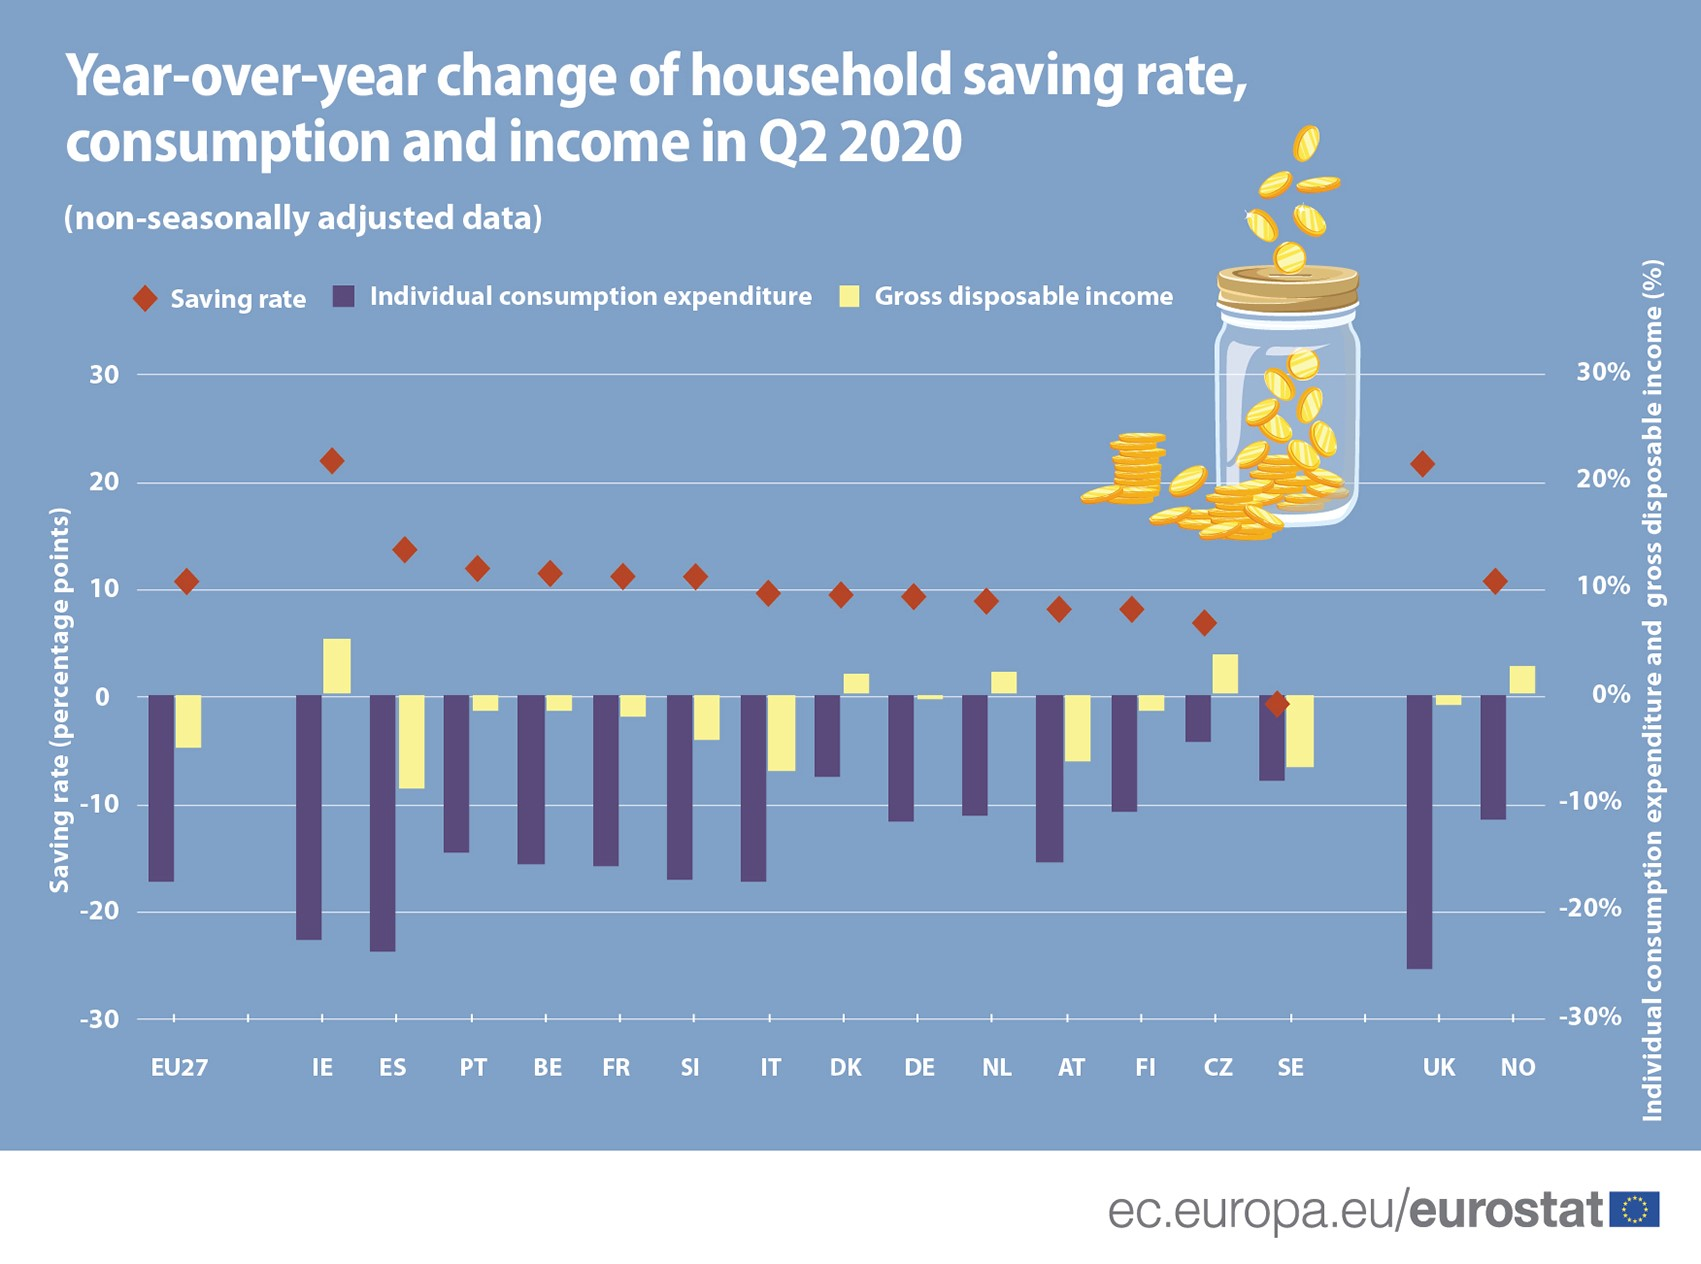 Year-over-year change of household saving rate, consumption and income in Q2 2020